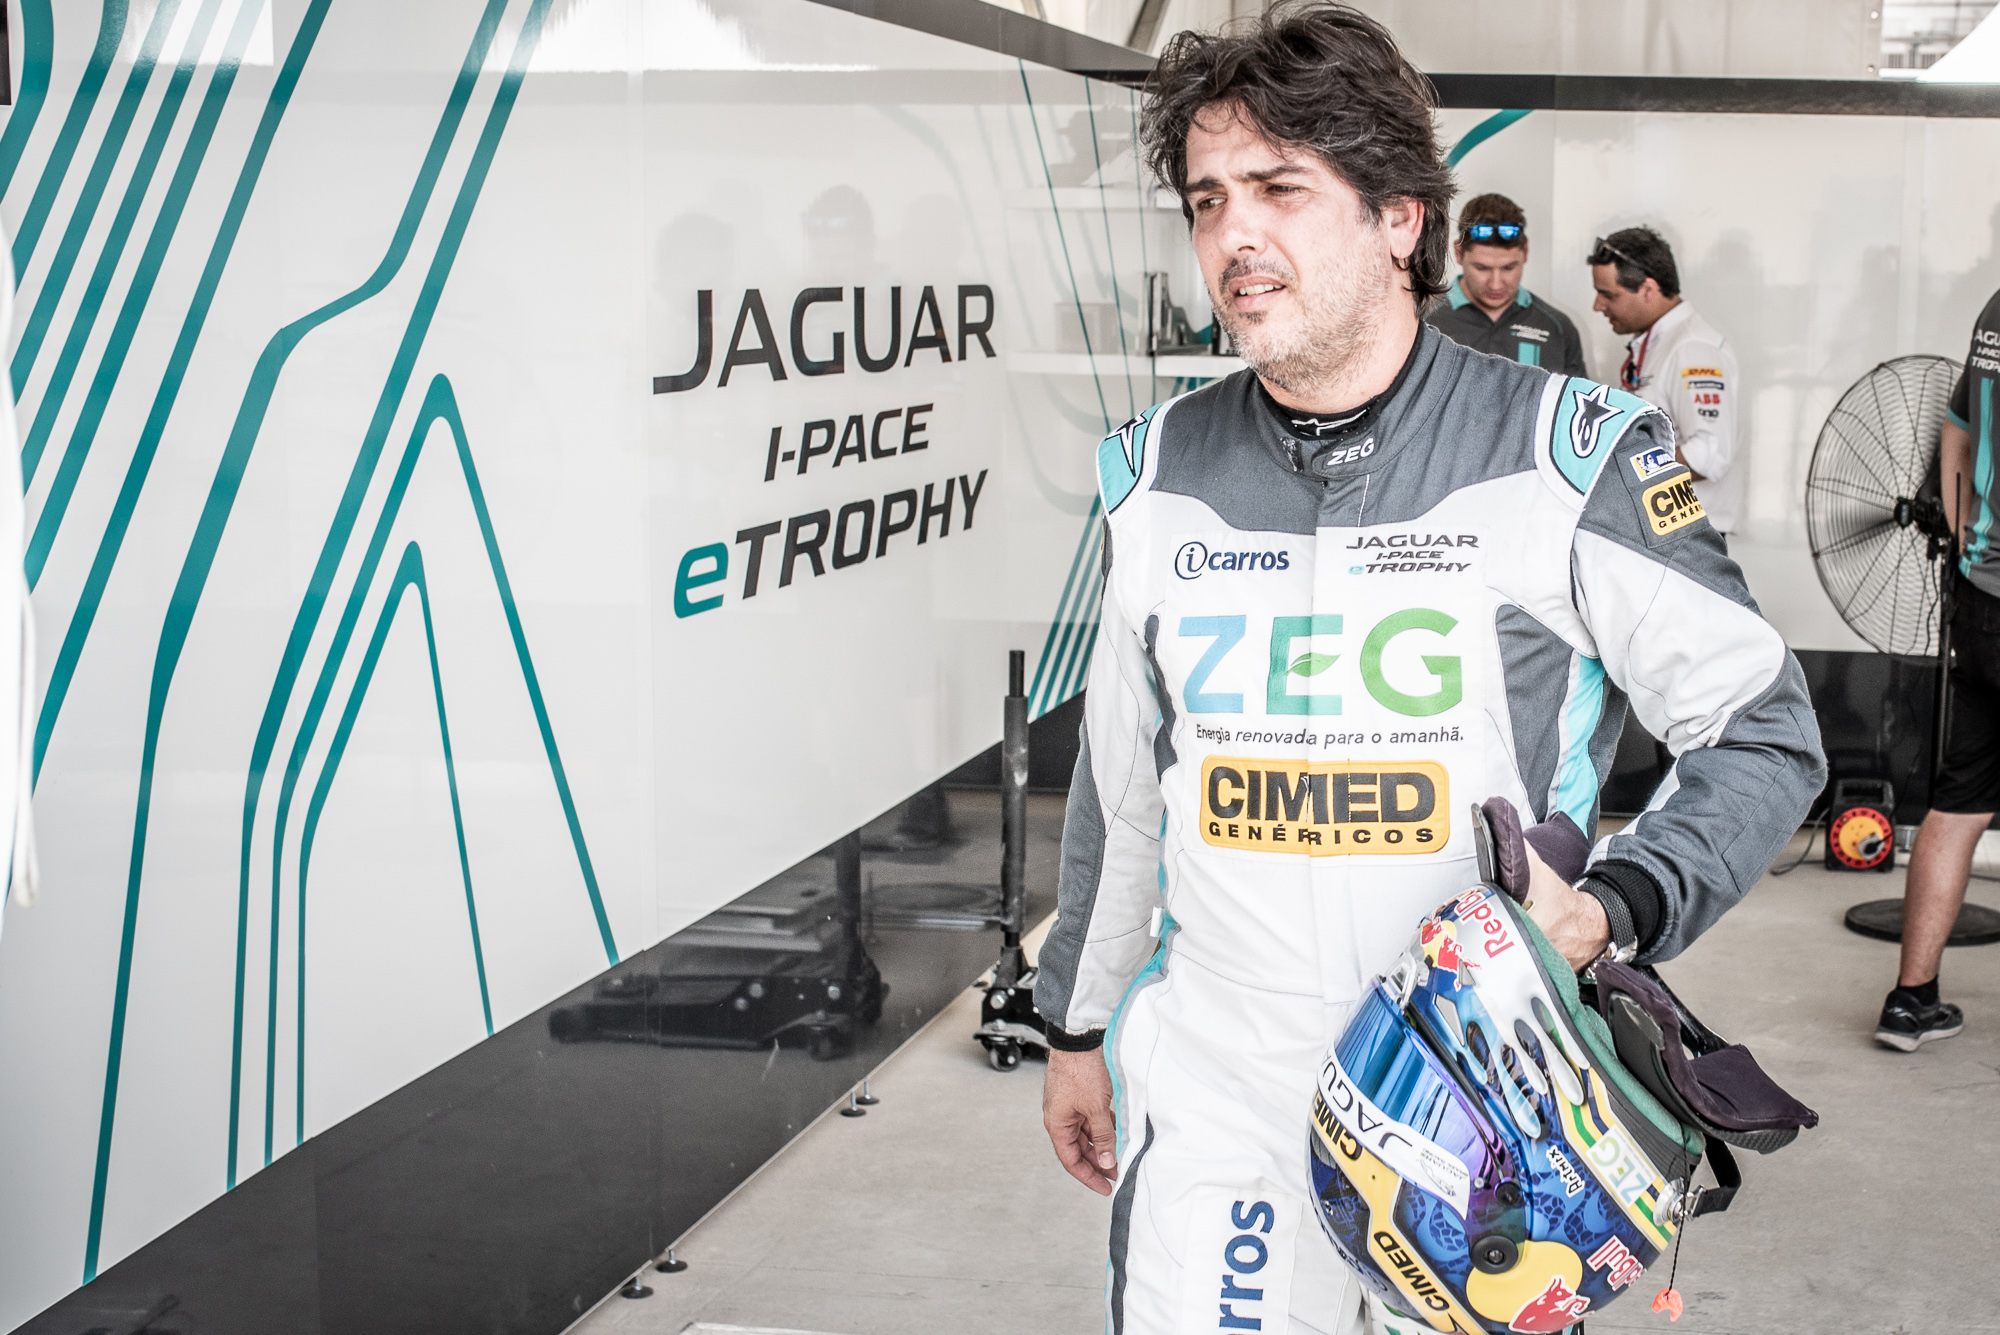 Photo of eTrophy – Apos conseguir a Pole Na China, Cacá Bueno conquista primeira vitória do Brasil no Jaguar I-PACE e-TROPHY